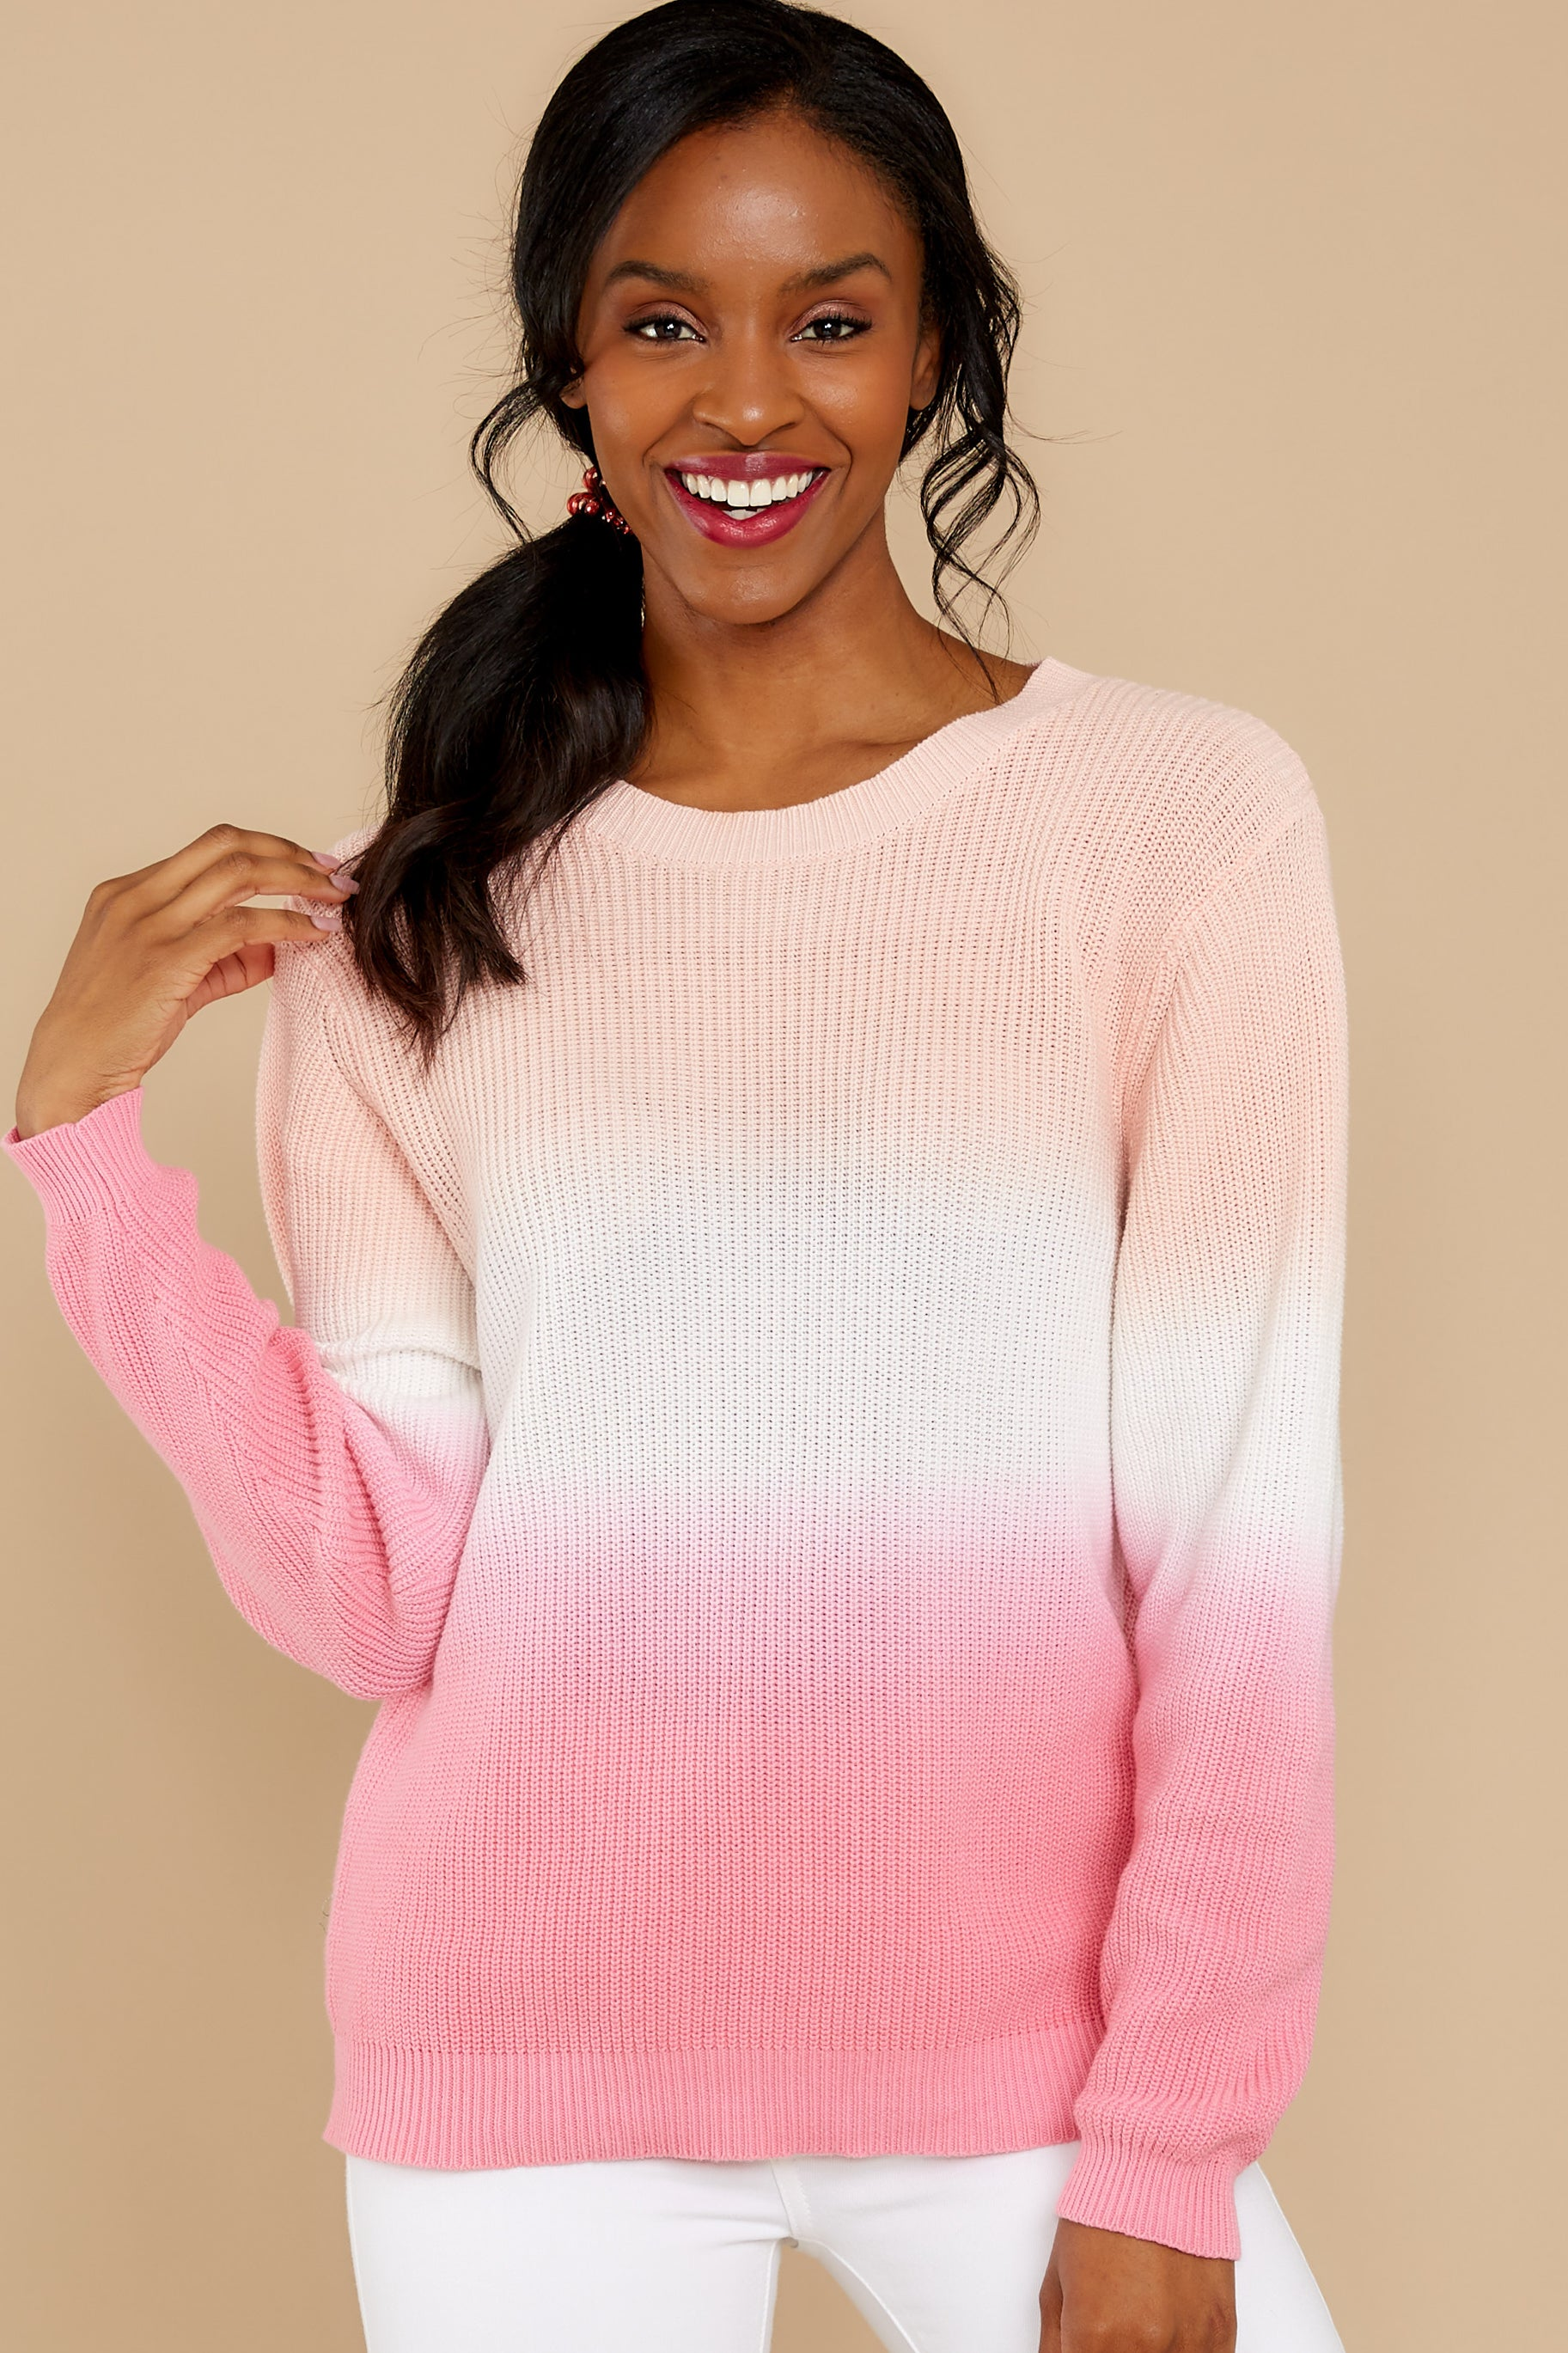 80s Sweatshirts and Sweaters Always Easy Going Pink Tie Dye Sweater $54.00 AT vintagedancer.com